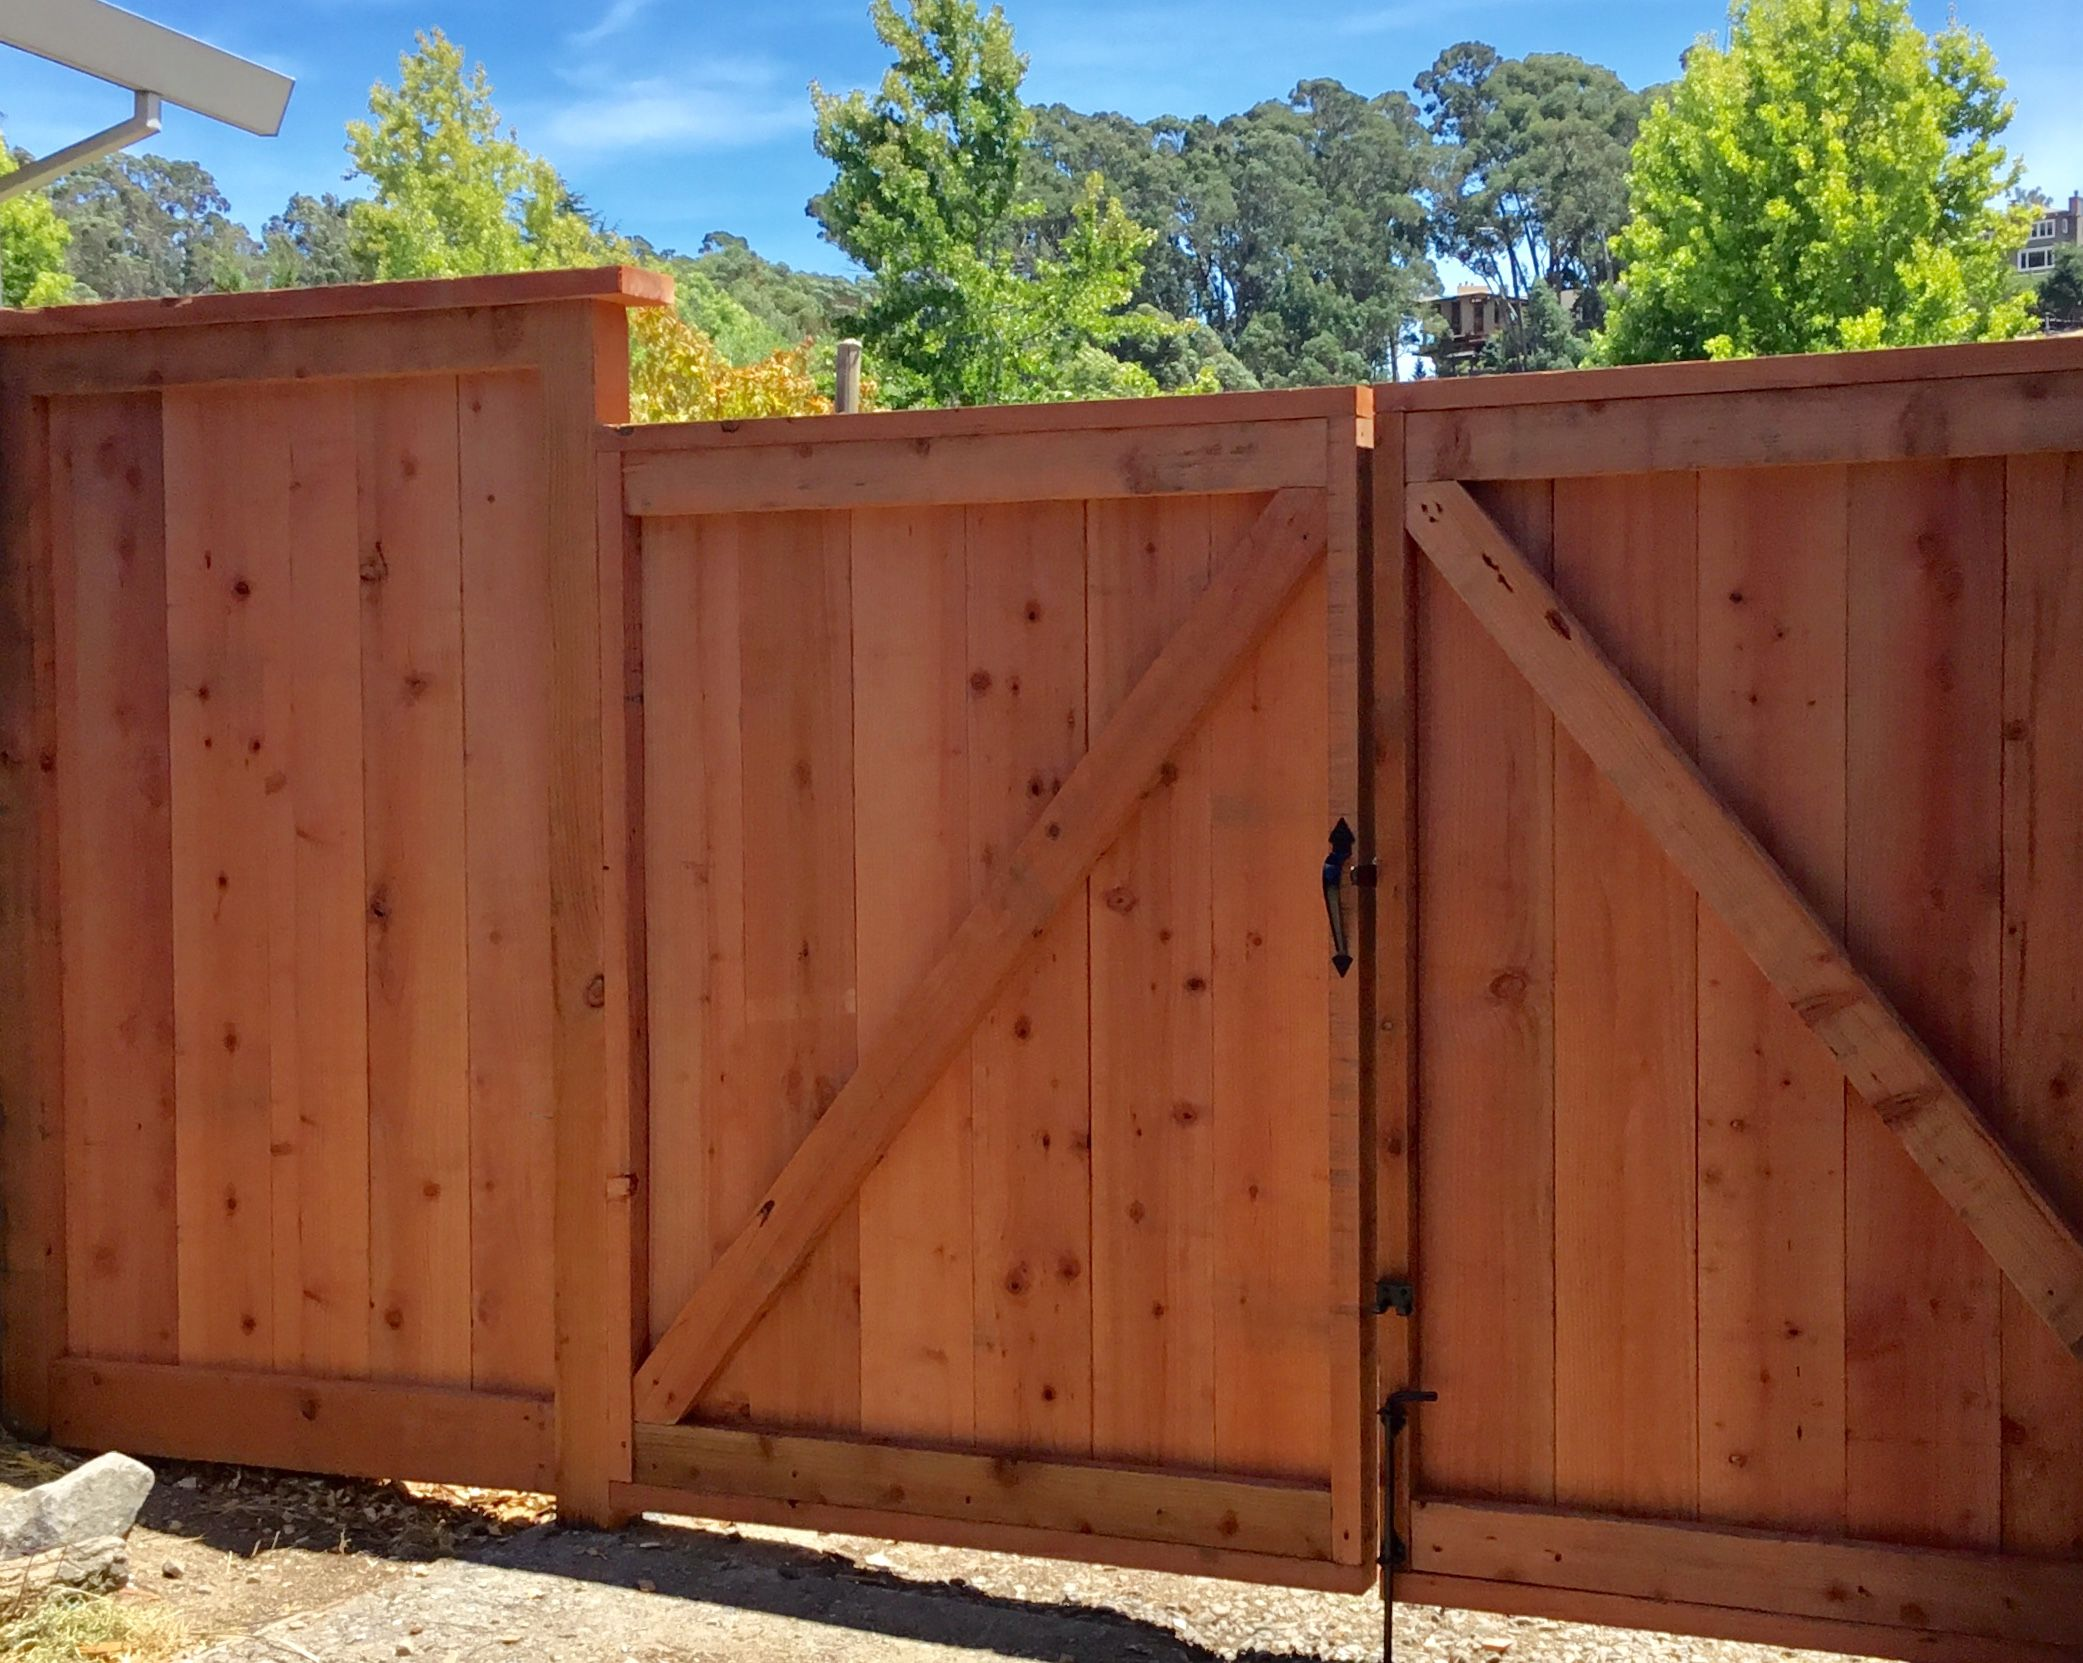 Fence contractor marin county fence construction fence